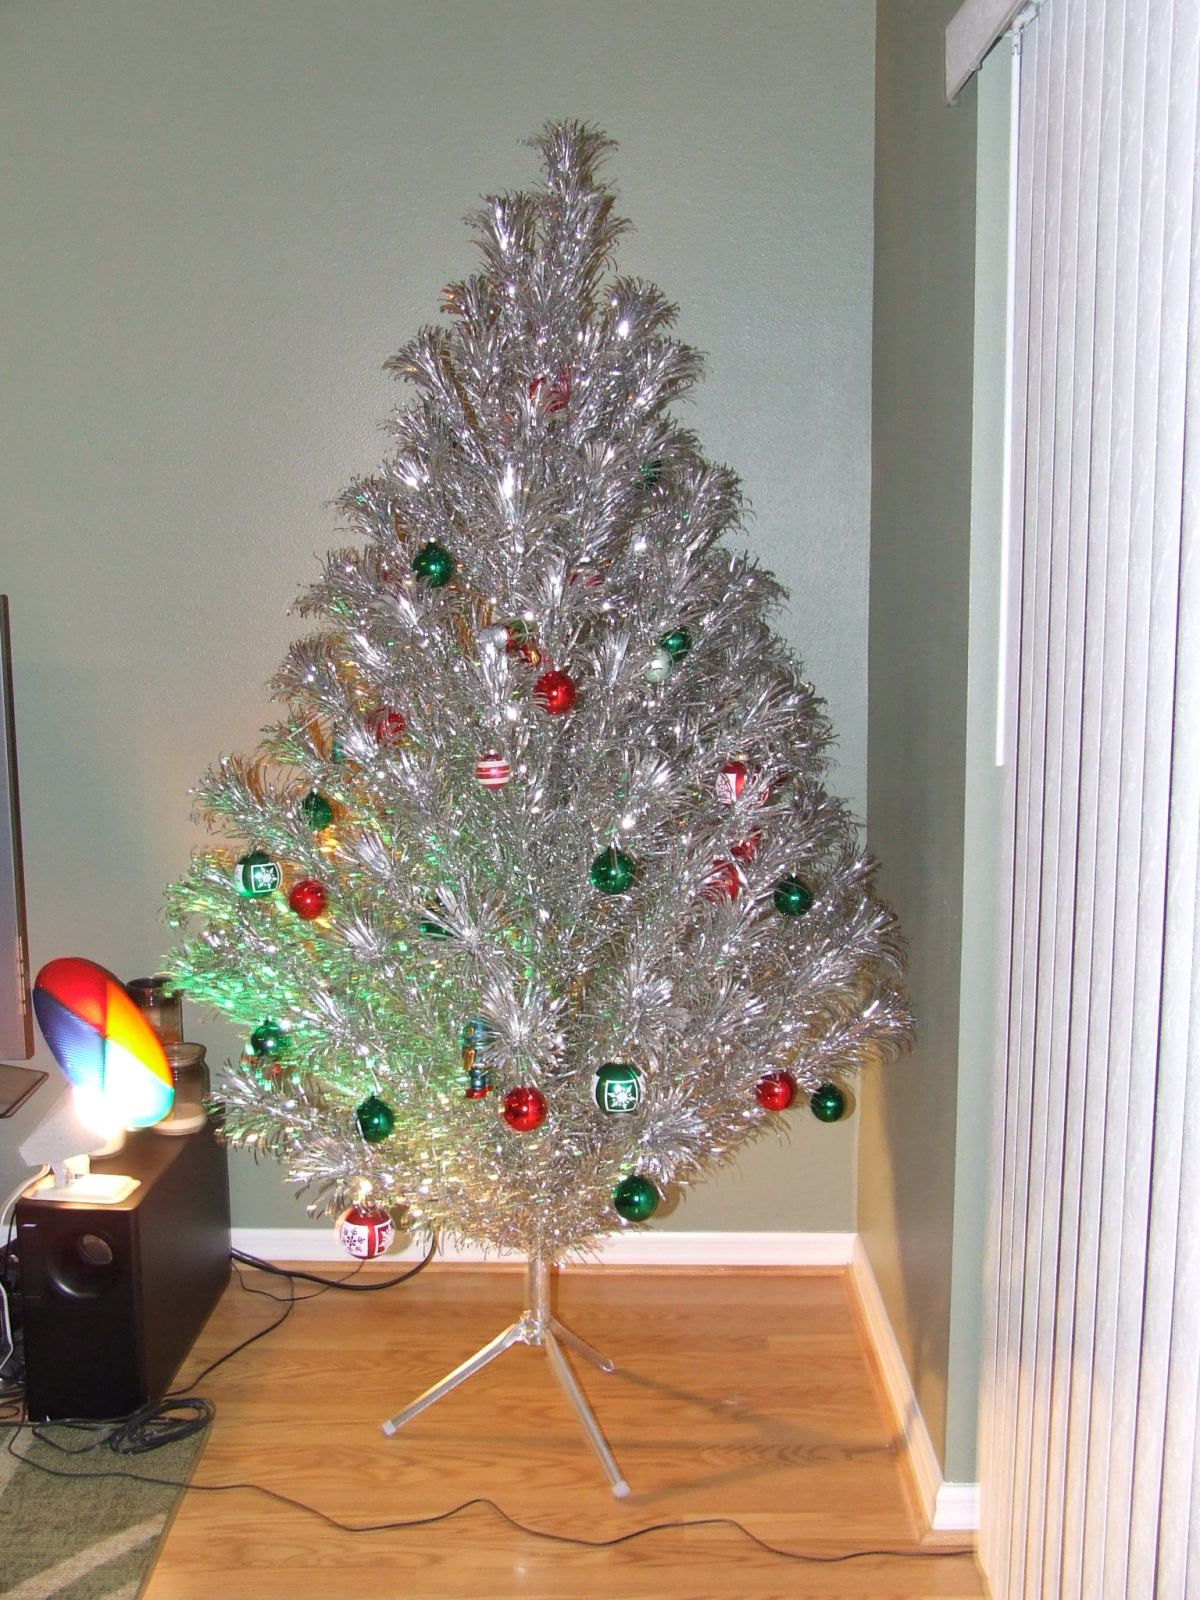 Aluminum Christmas Tree With Color Wheel. Brings Back Many Memories For Me!